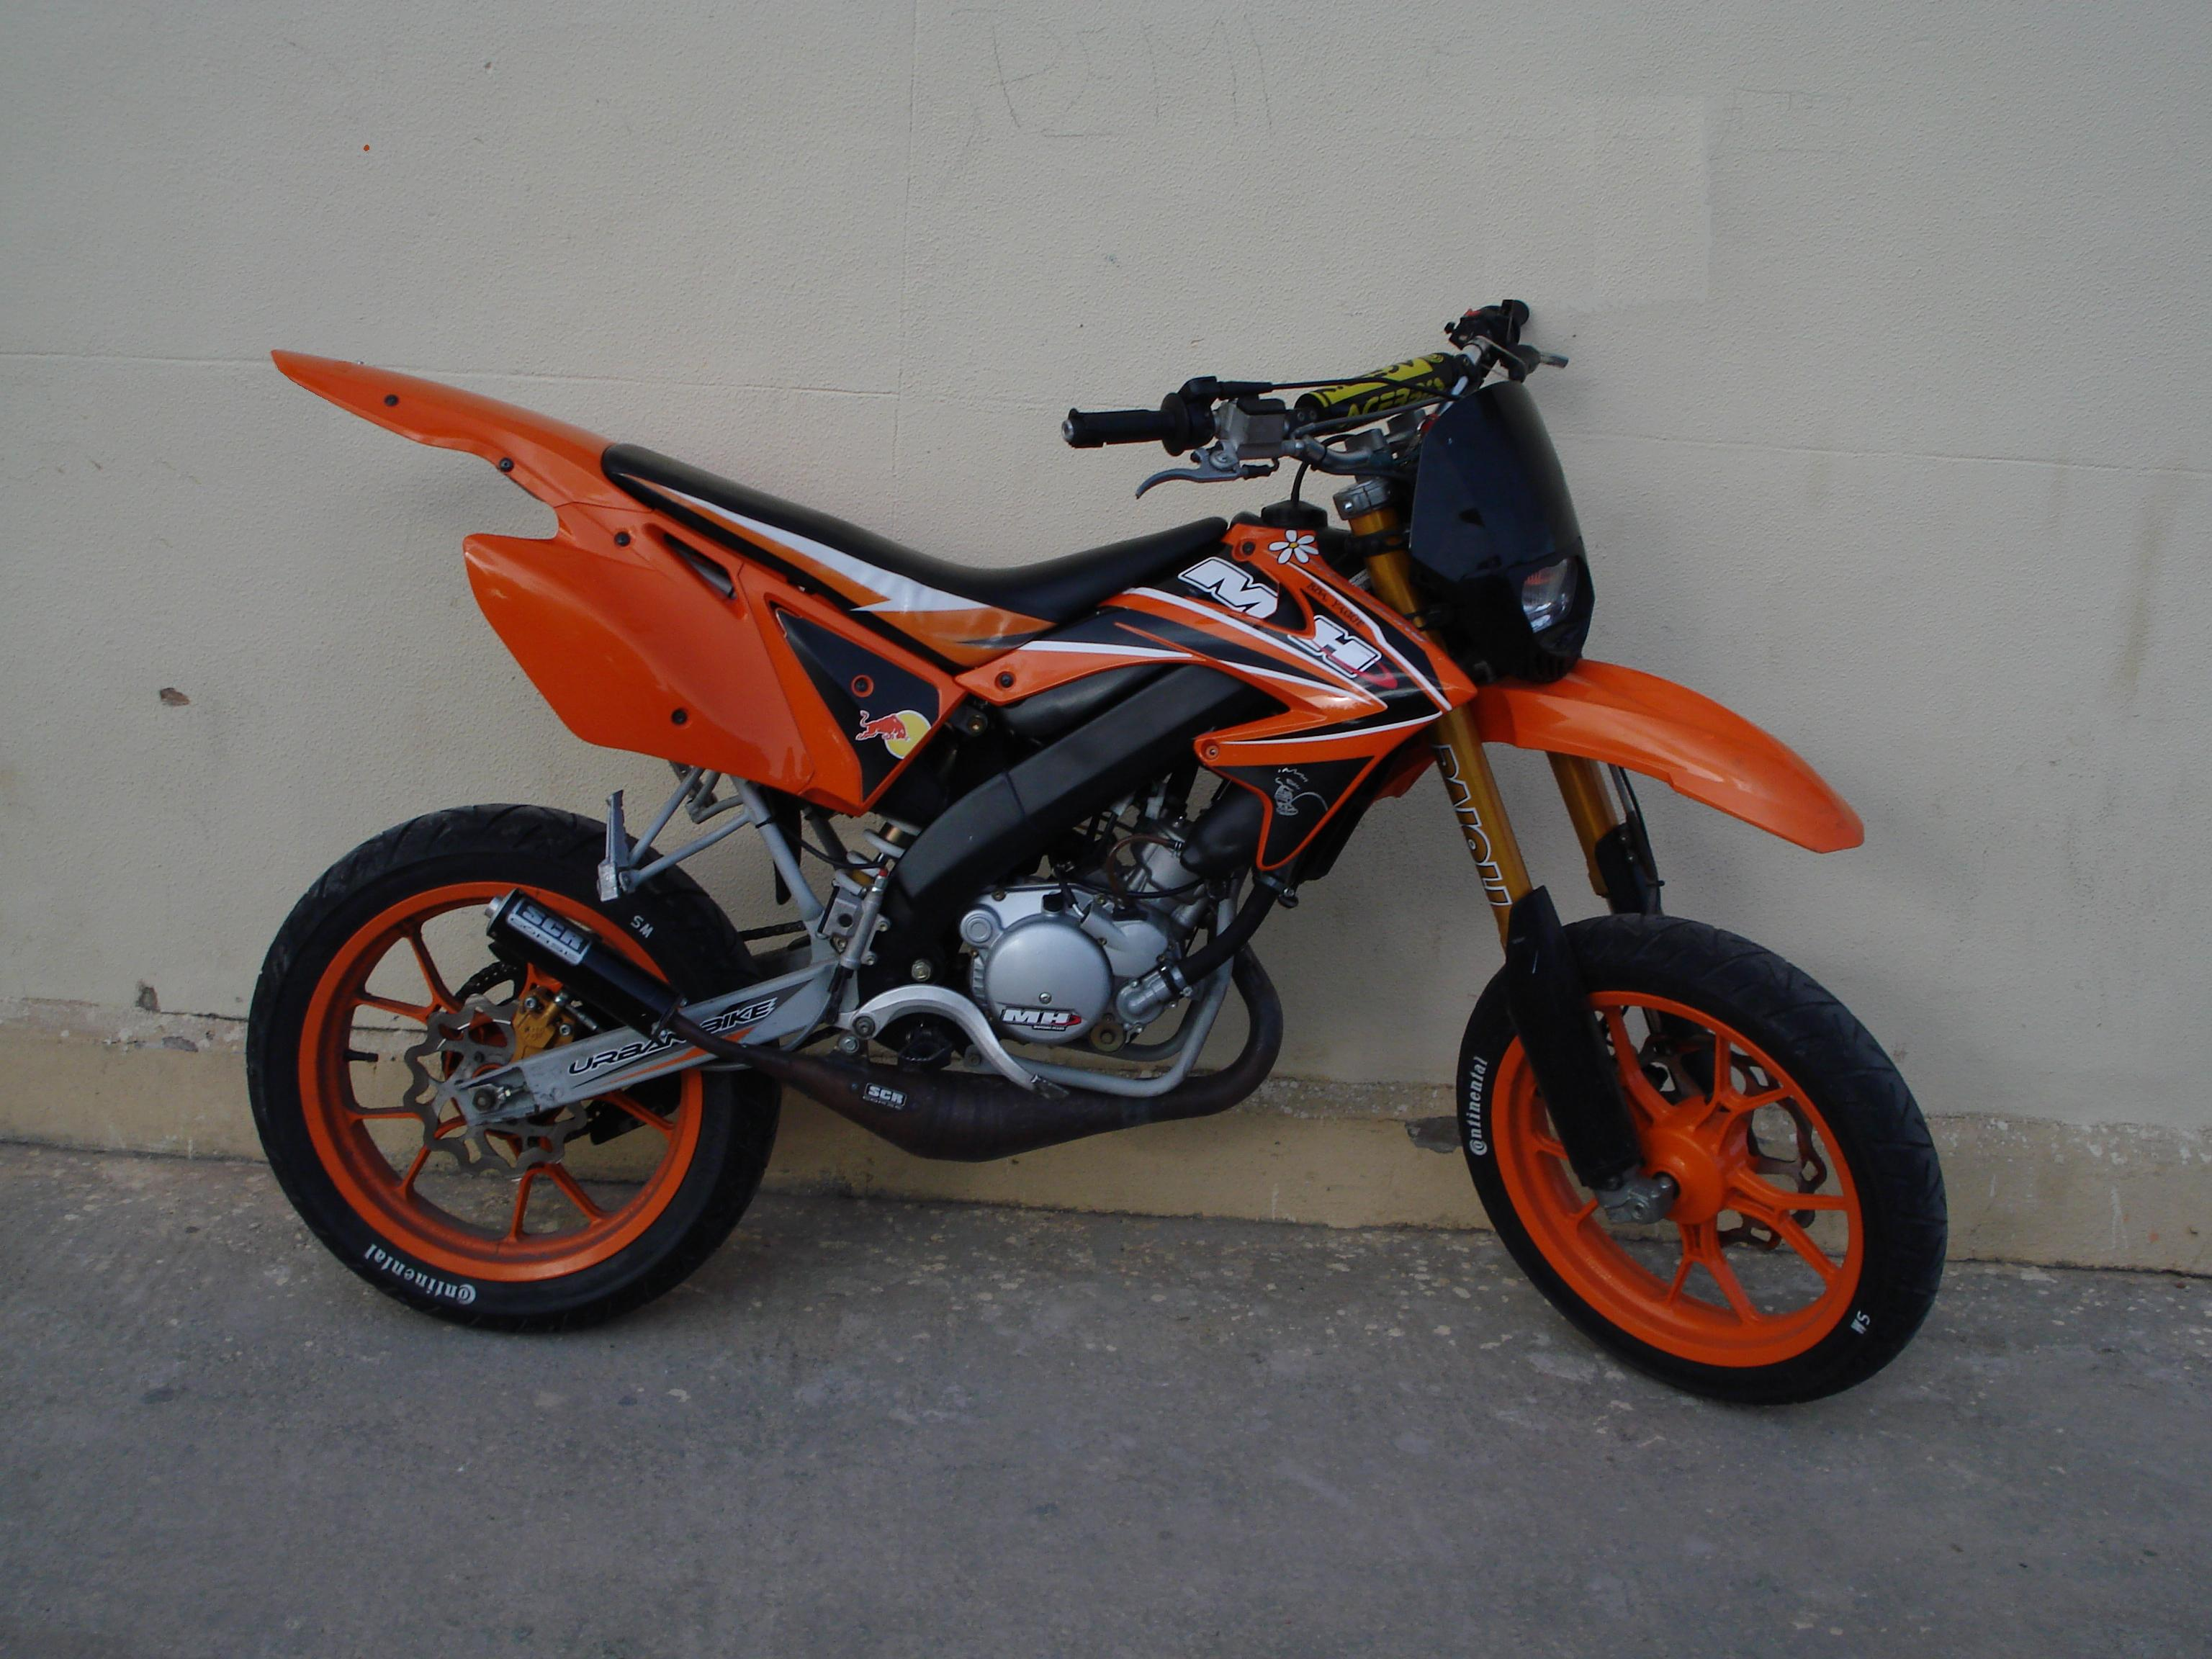 2007 Motorhispania Ryz 50 Super Motard: pics, specs and ...